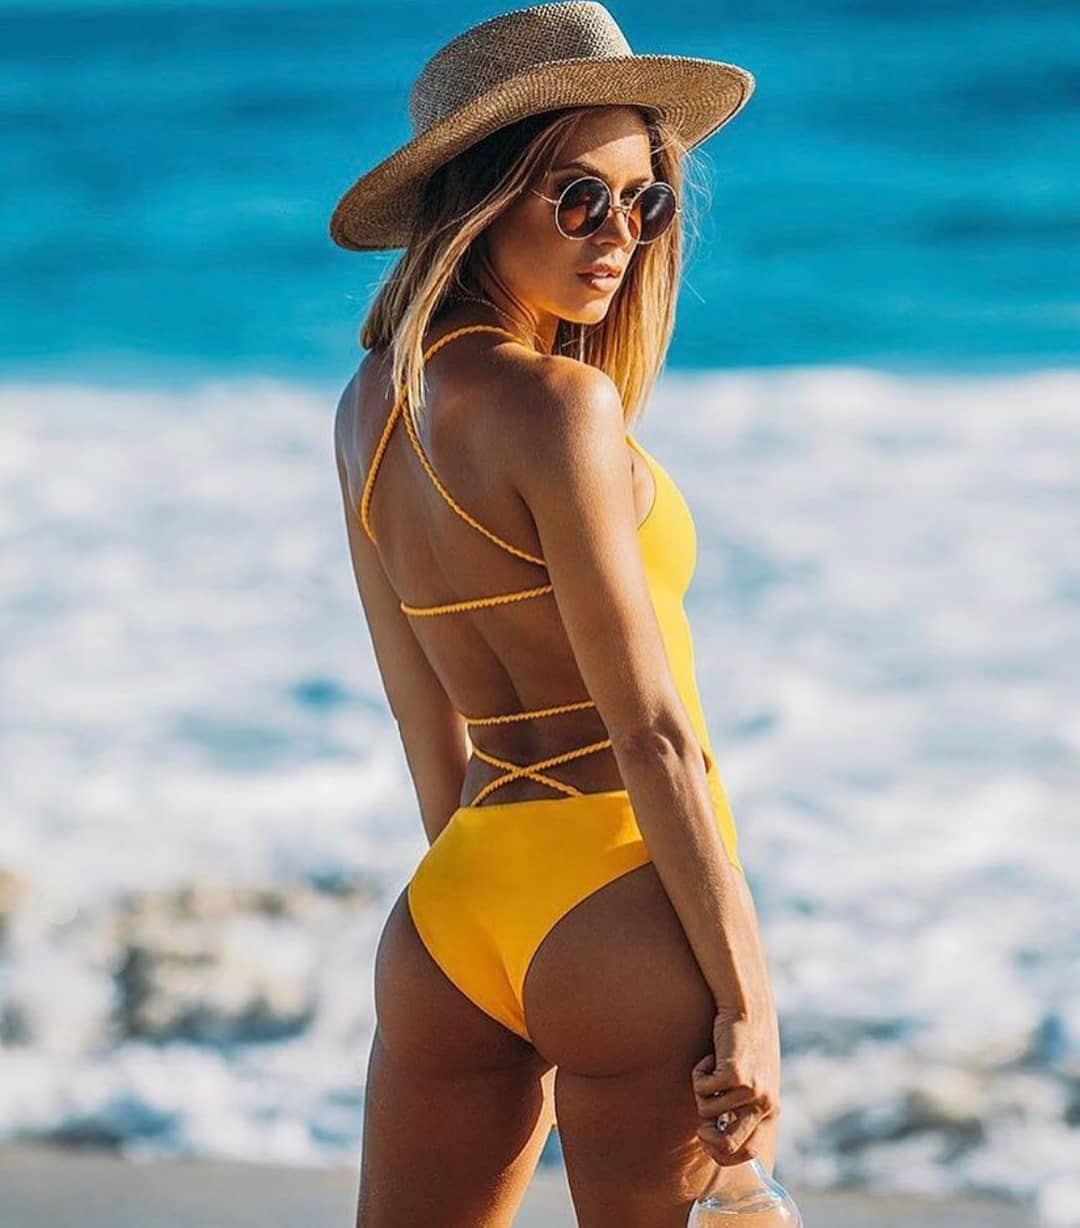 Yellow One Piece Swimsuit With A Strappy Back For Summer 2019